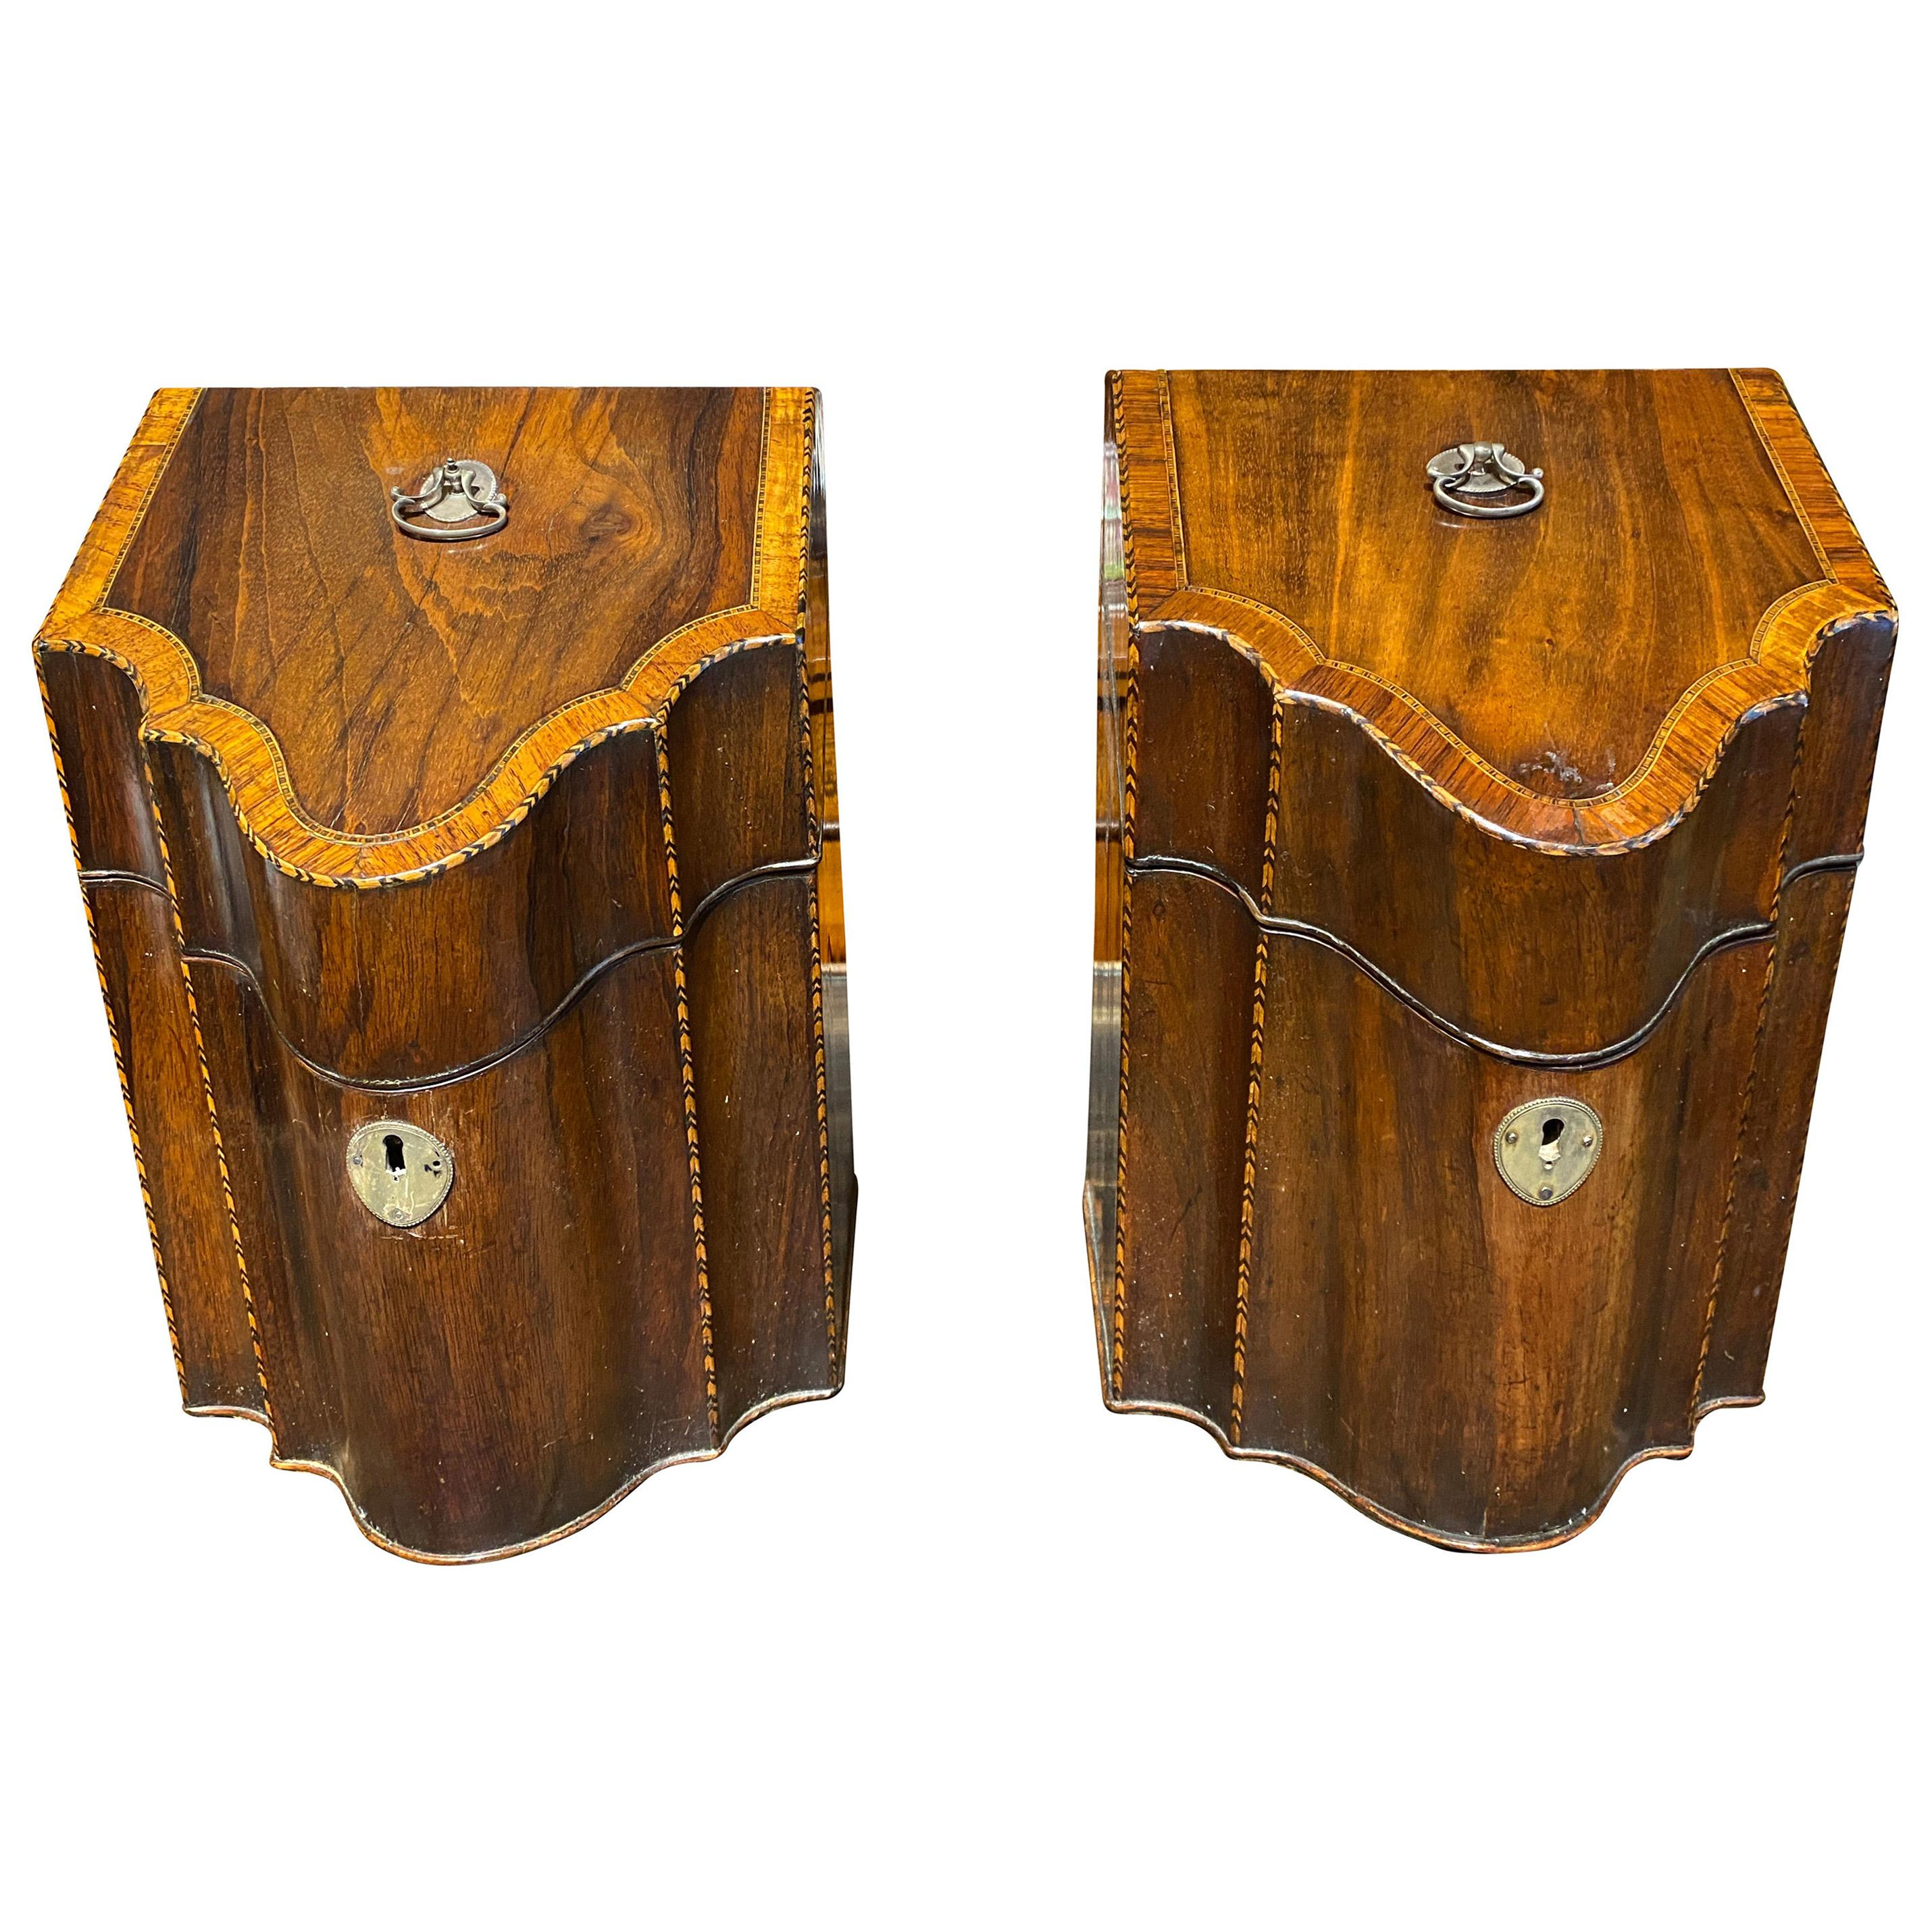 Fine Pair Of George III Mahogany And Crossbanded Cutlery Boxes